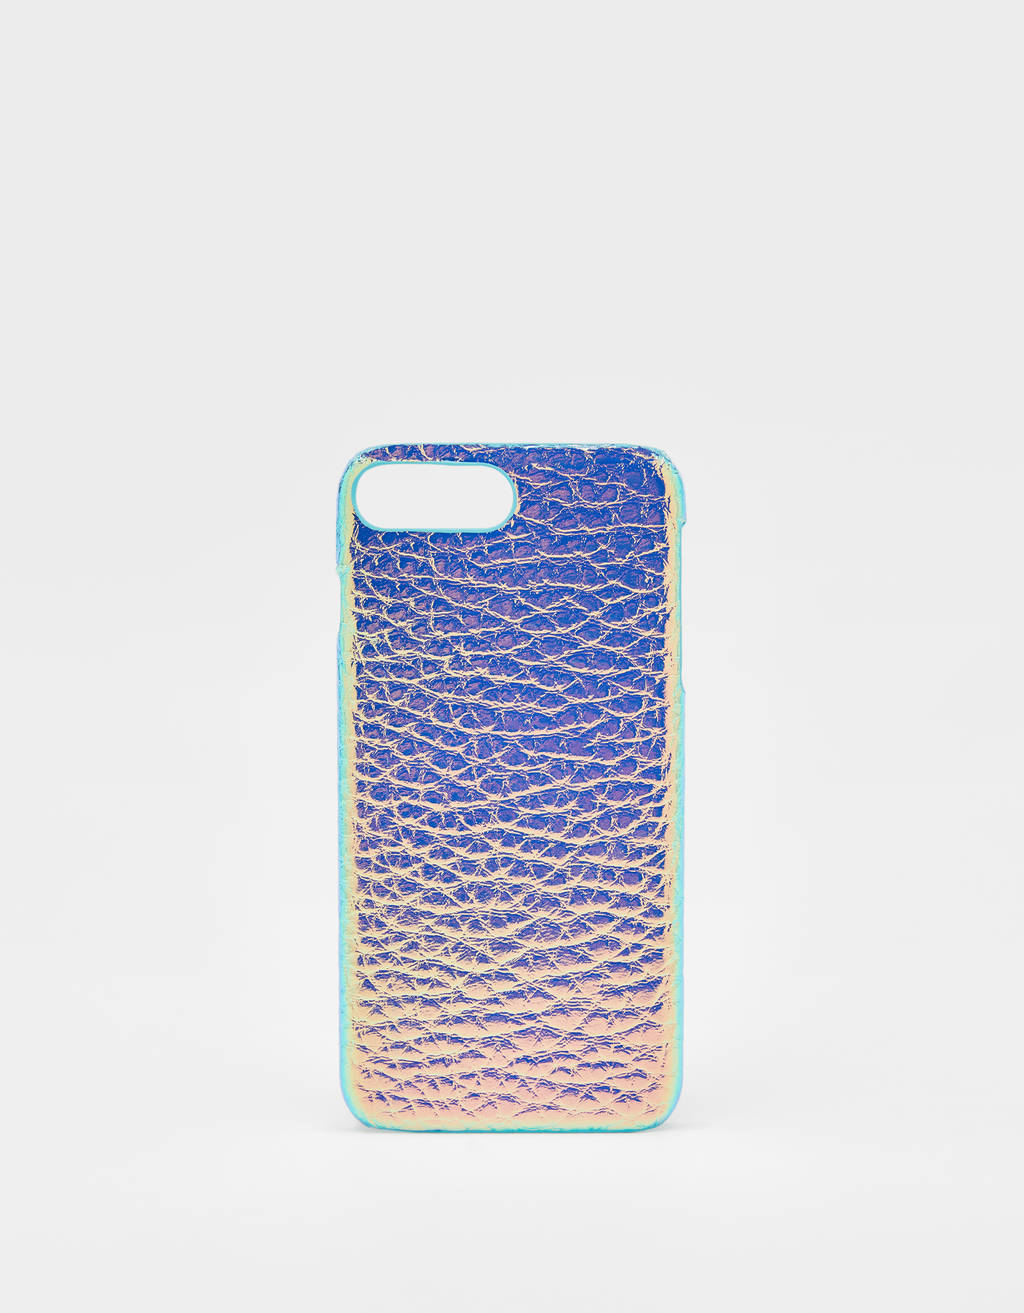 Iridescent iPhone 6 Plus / 7 Plus / 8 Plus case